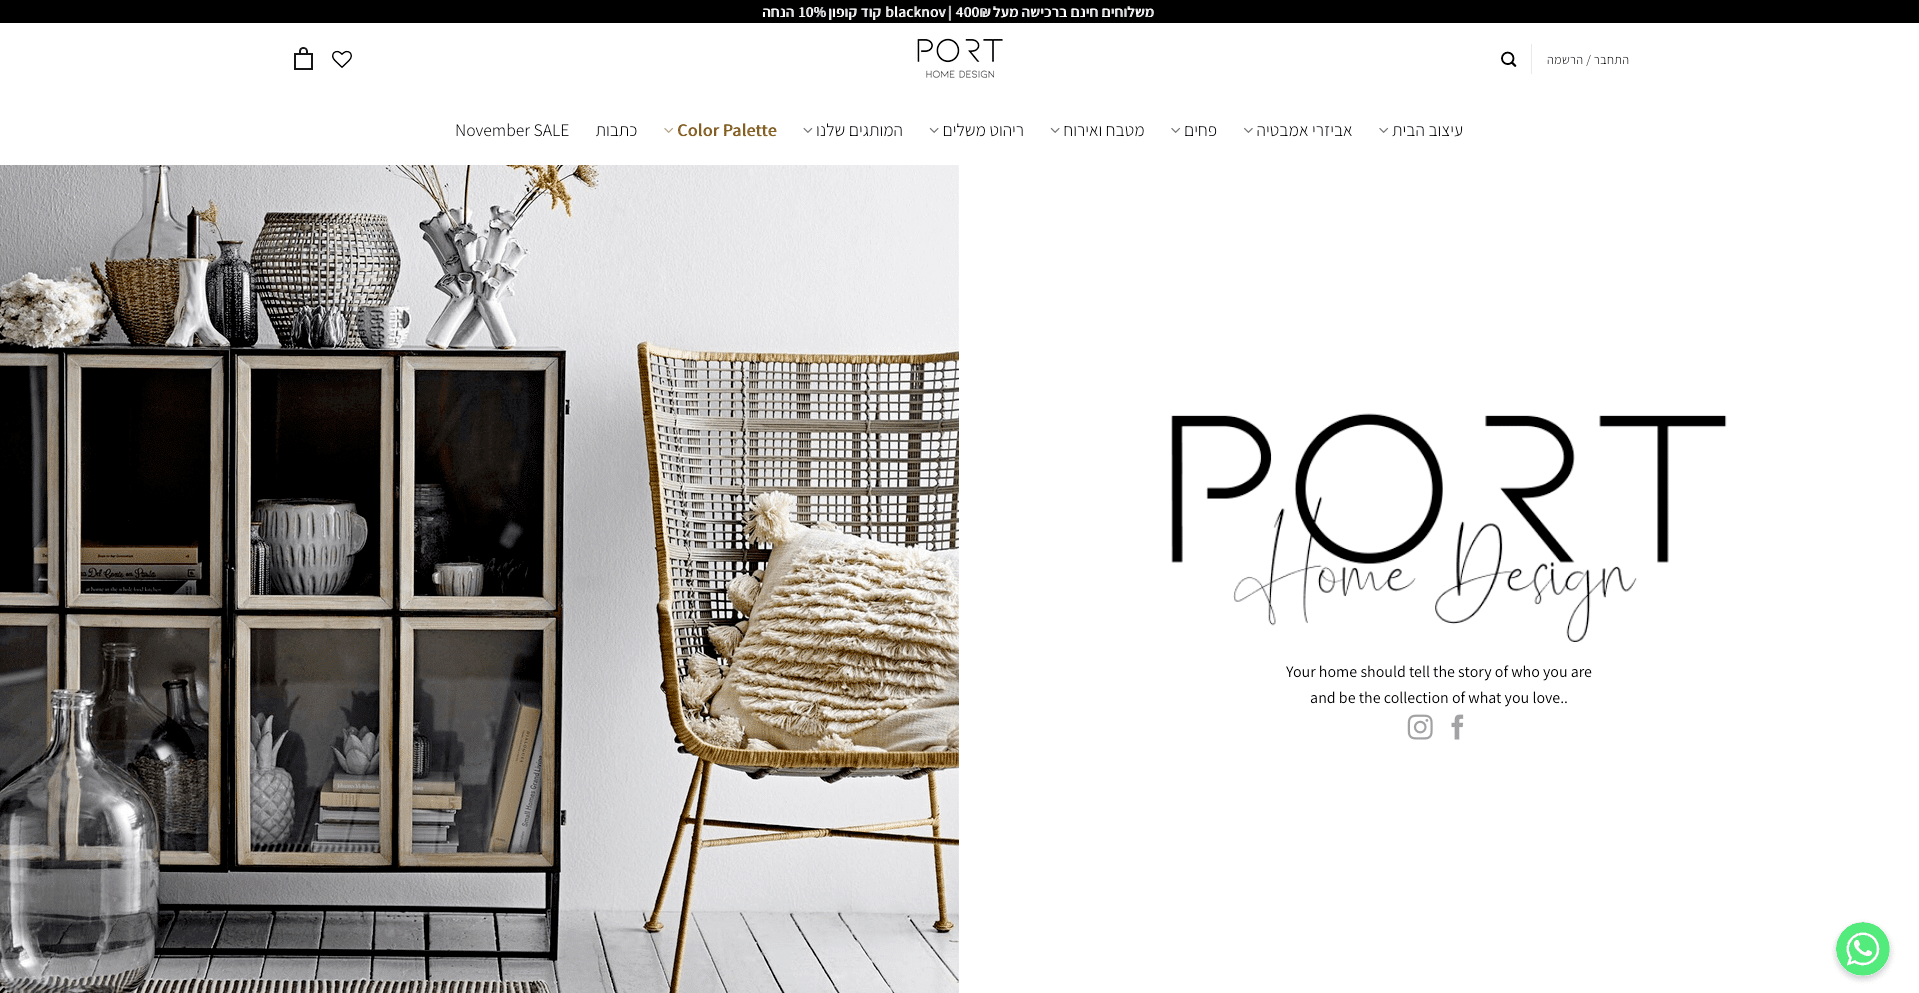 https://porthomedesign.com